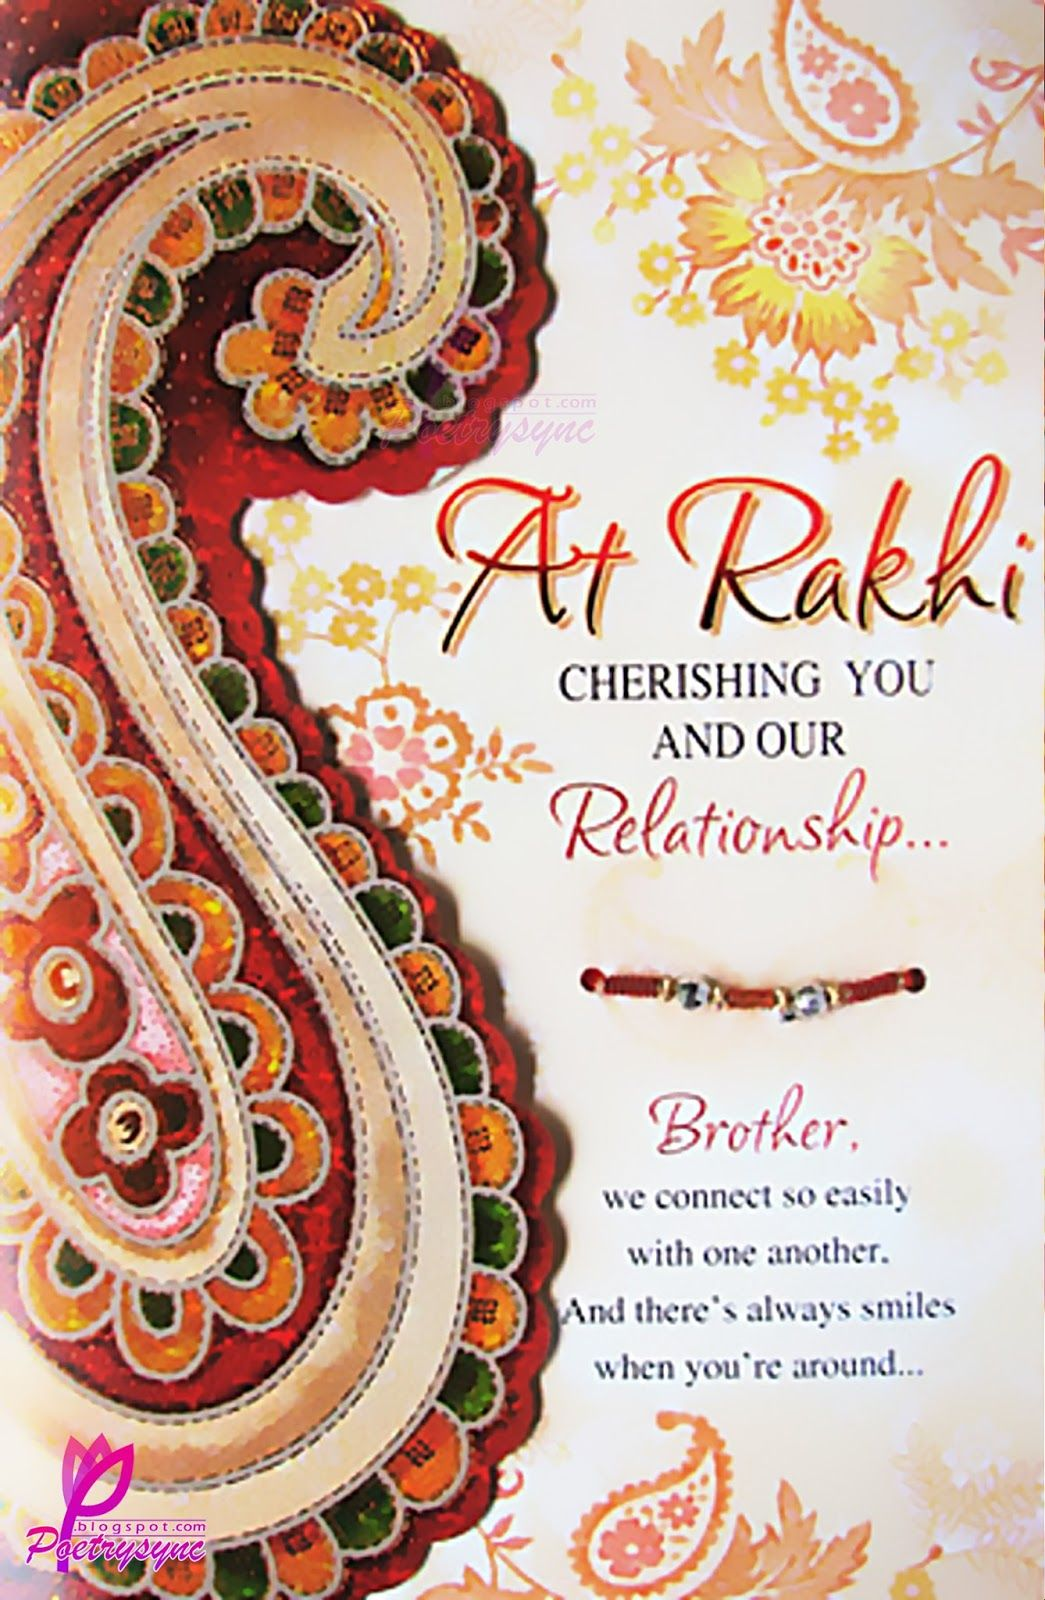 Brother and sister quotes siblings bandhan greetings cards brother and sister quotes siblings bandhan greetings cards for sisters and brothers kristyandbryce Image collections